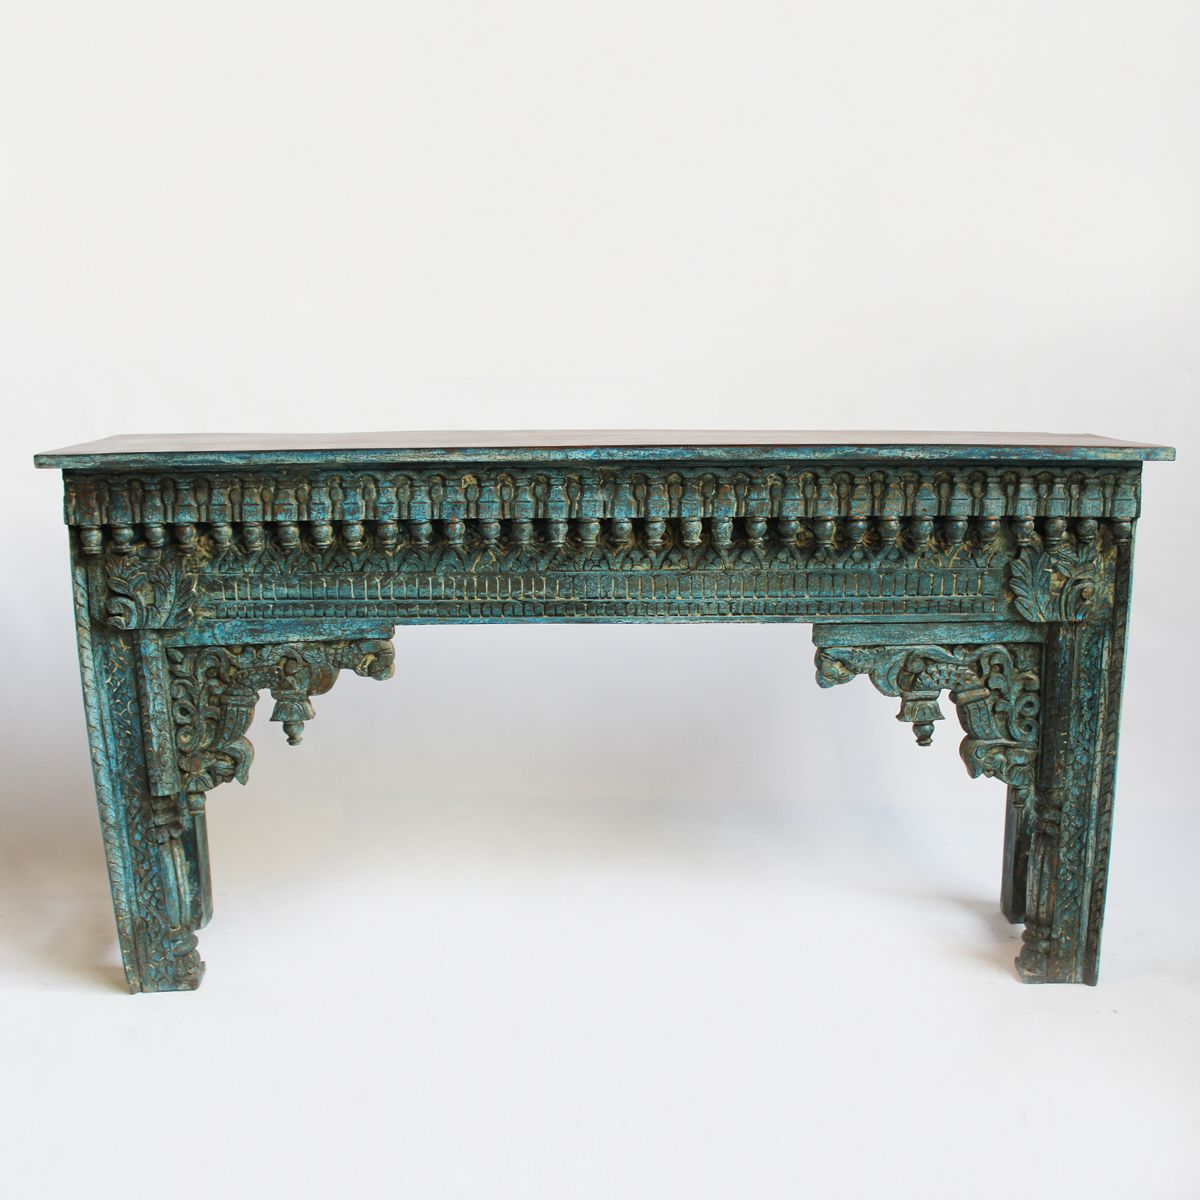 Antique carved wood indian doorway fragment repurposed into a antique carved wood indian doorway fragment repurposed into a beautiful console or hall way table geotapseo Gallery